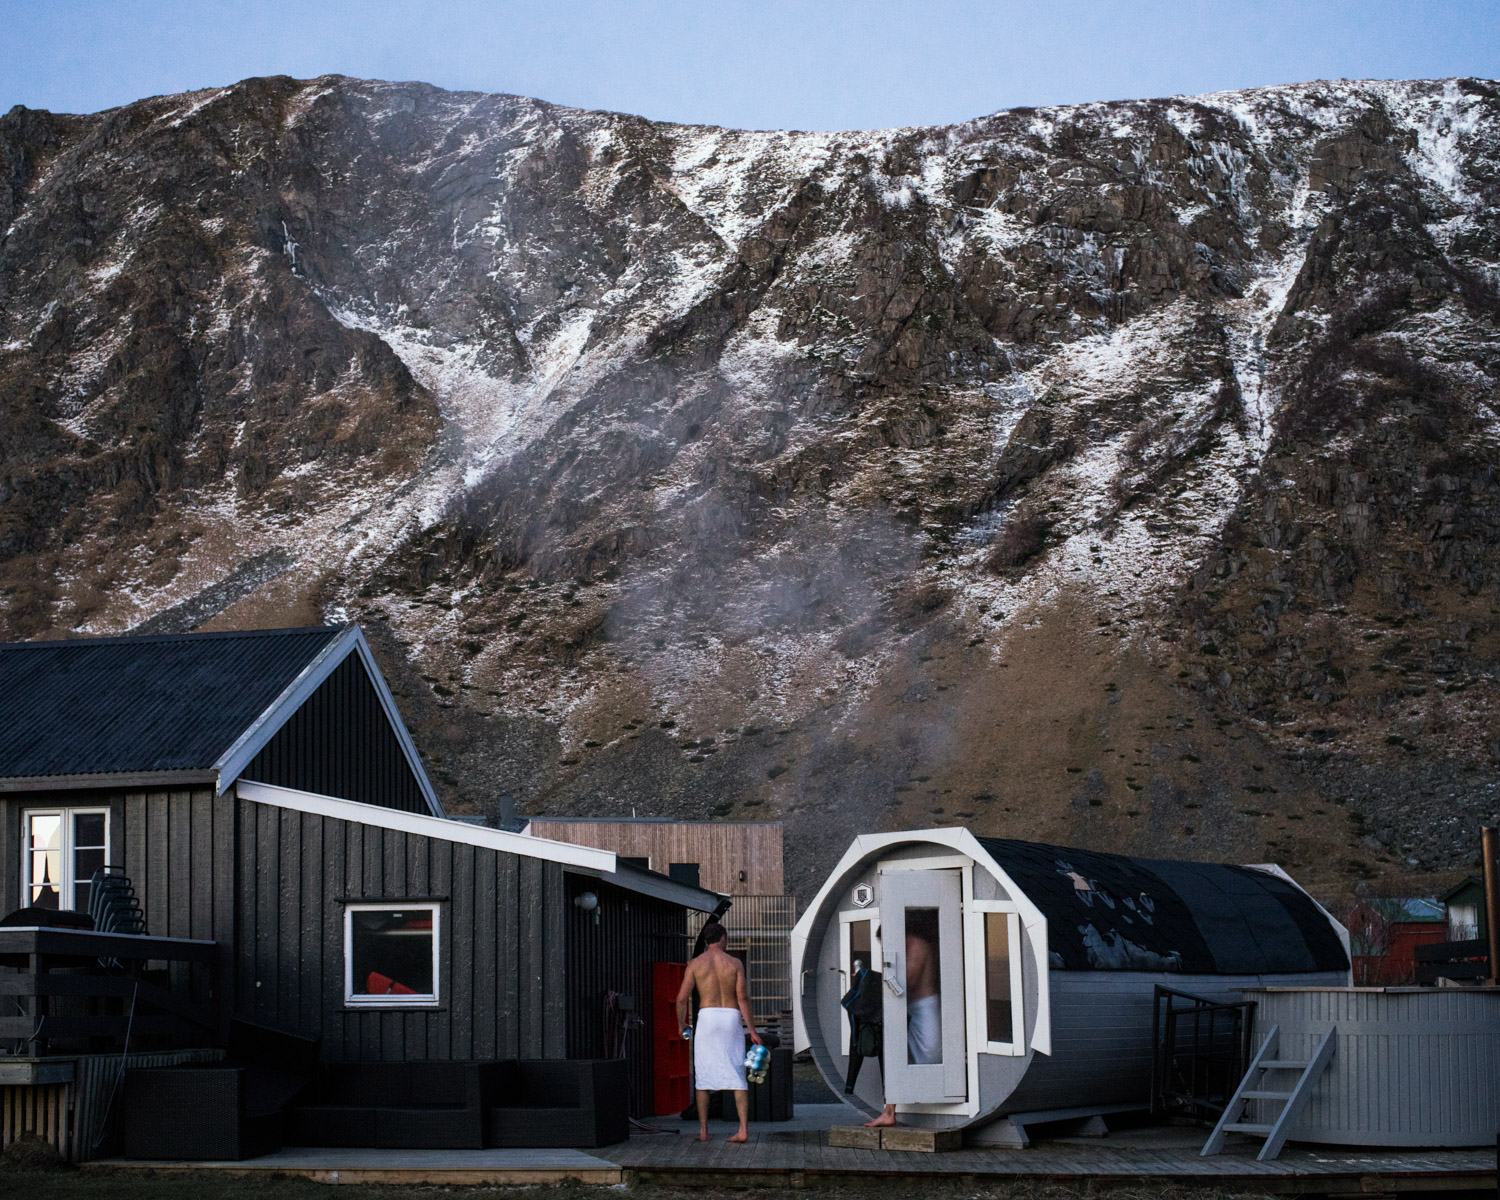 A couple of surfers finished a sauna session at the end of a long day surfing in the icy water of the lofoten islands in the Unstad Camp